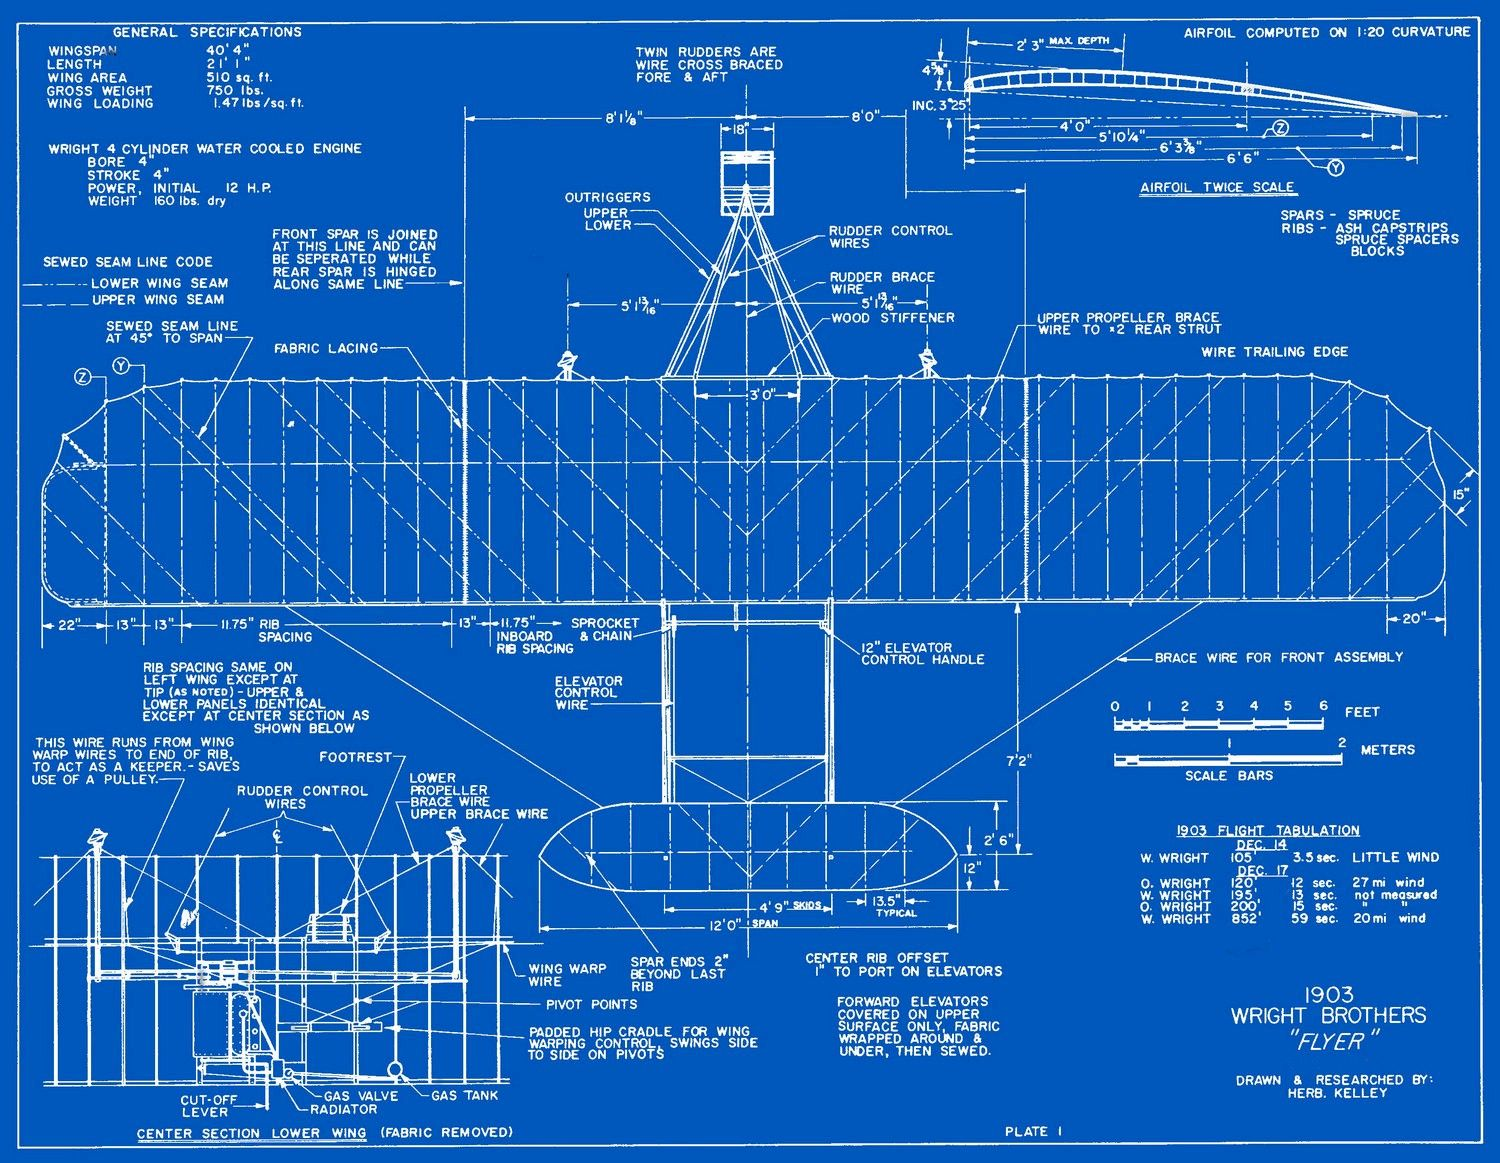 1903flyerblueprintsplate1g 15001163 print project wright flyer plans and drawings part of the wright brothers aeroplane company a virtual museum of pioneer aviation the invention of the airplane malvernweather Image collections